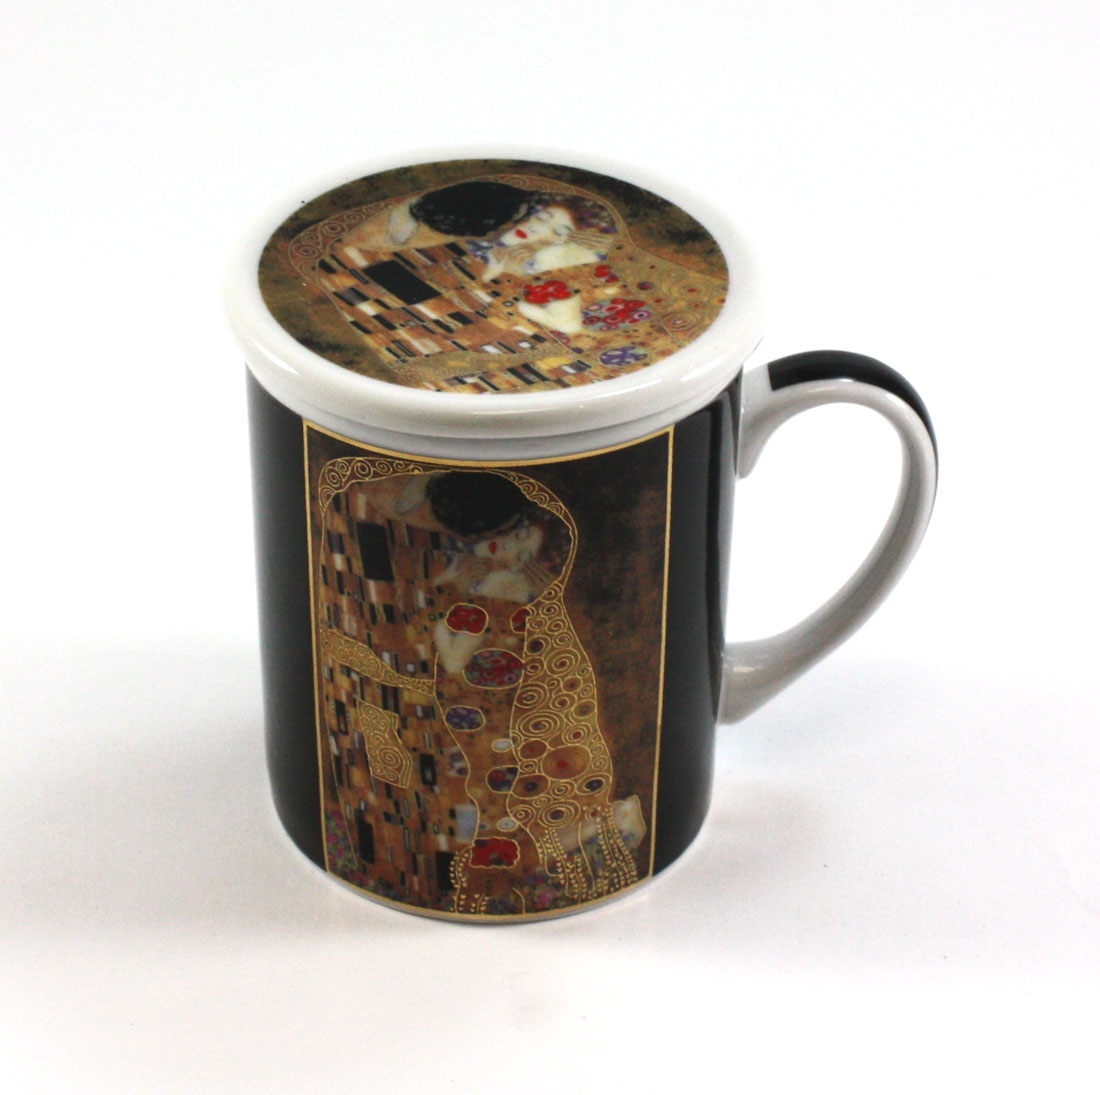 klimt kiss infuser mug. Black Bedroom Furniture Sets. Home Design Ideas